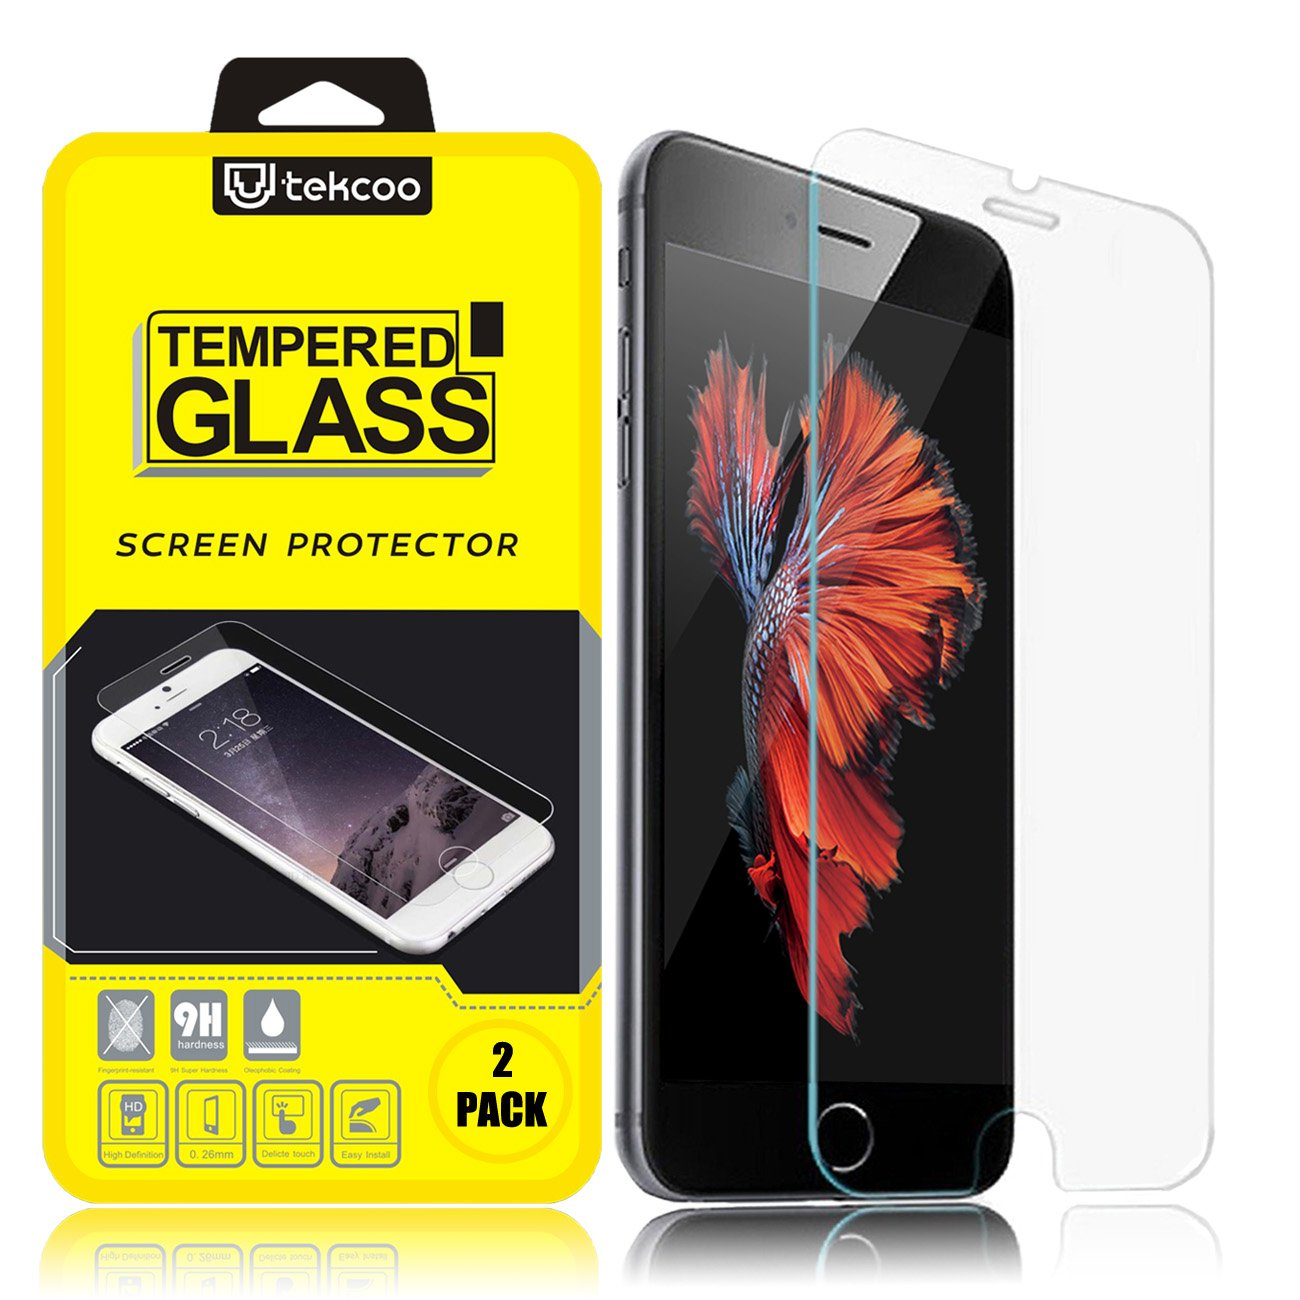 Iphone 6S Screen Protector 2-Pack Tekcoo Iphone 6 / Iphone 6S (4.7 Inch) Prem.. 14